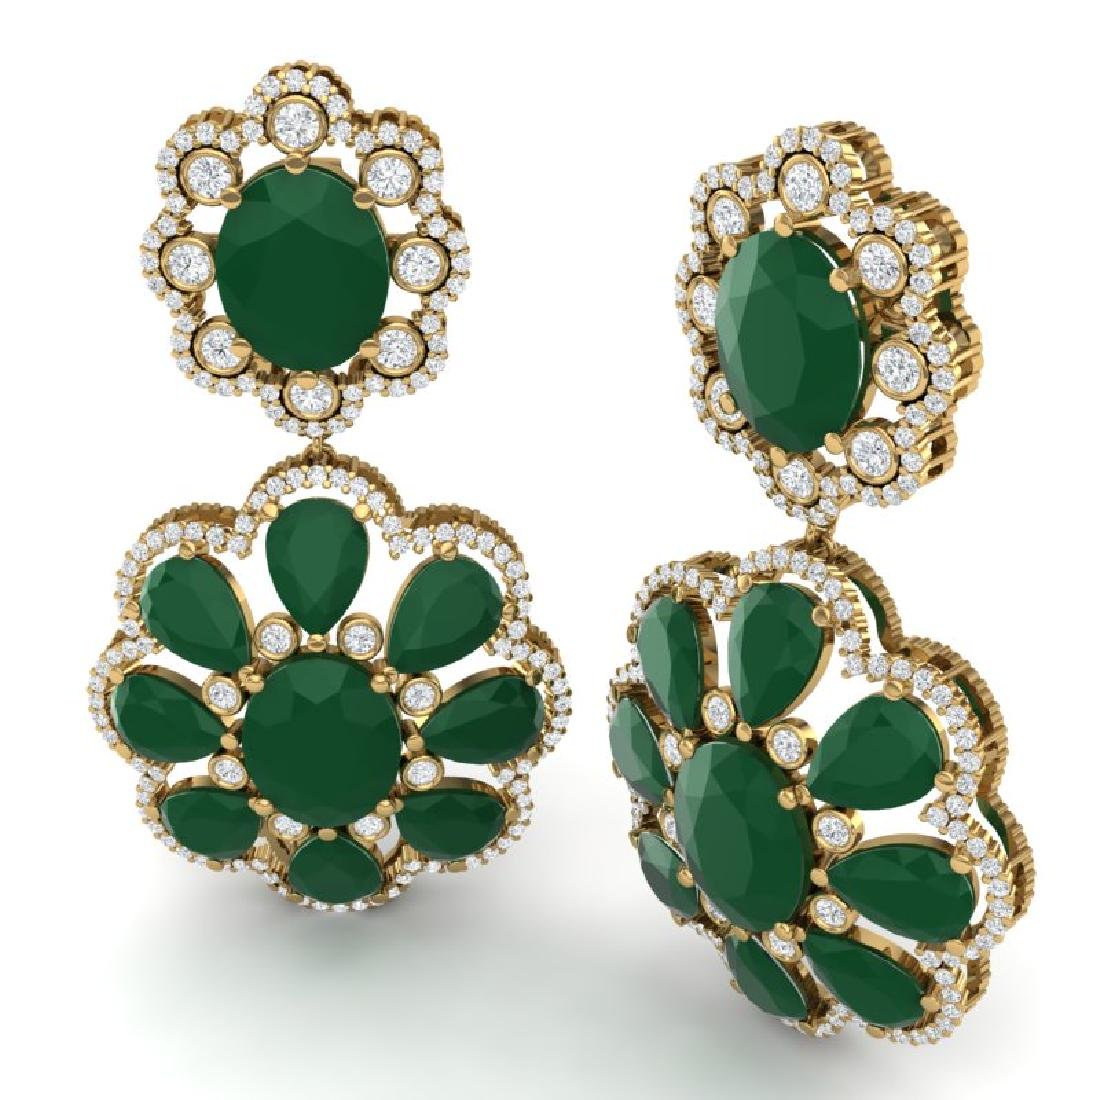 33.88 CTW Royalty Emerald & VS Diamond Earrings 18K - 3